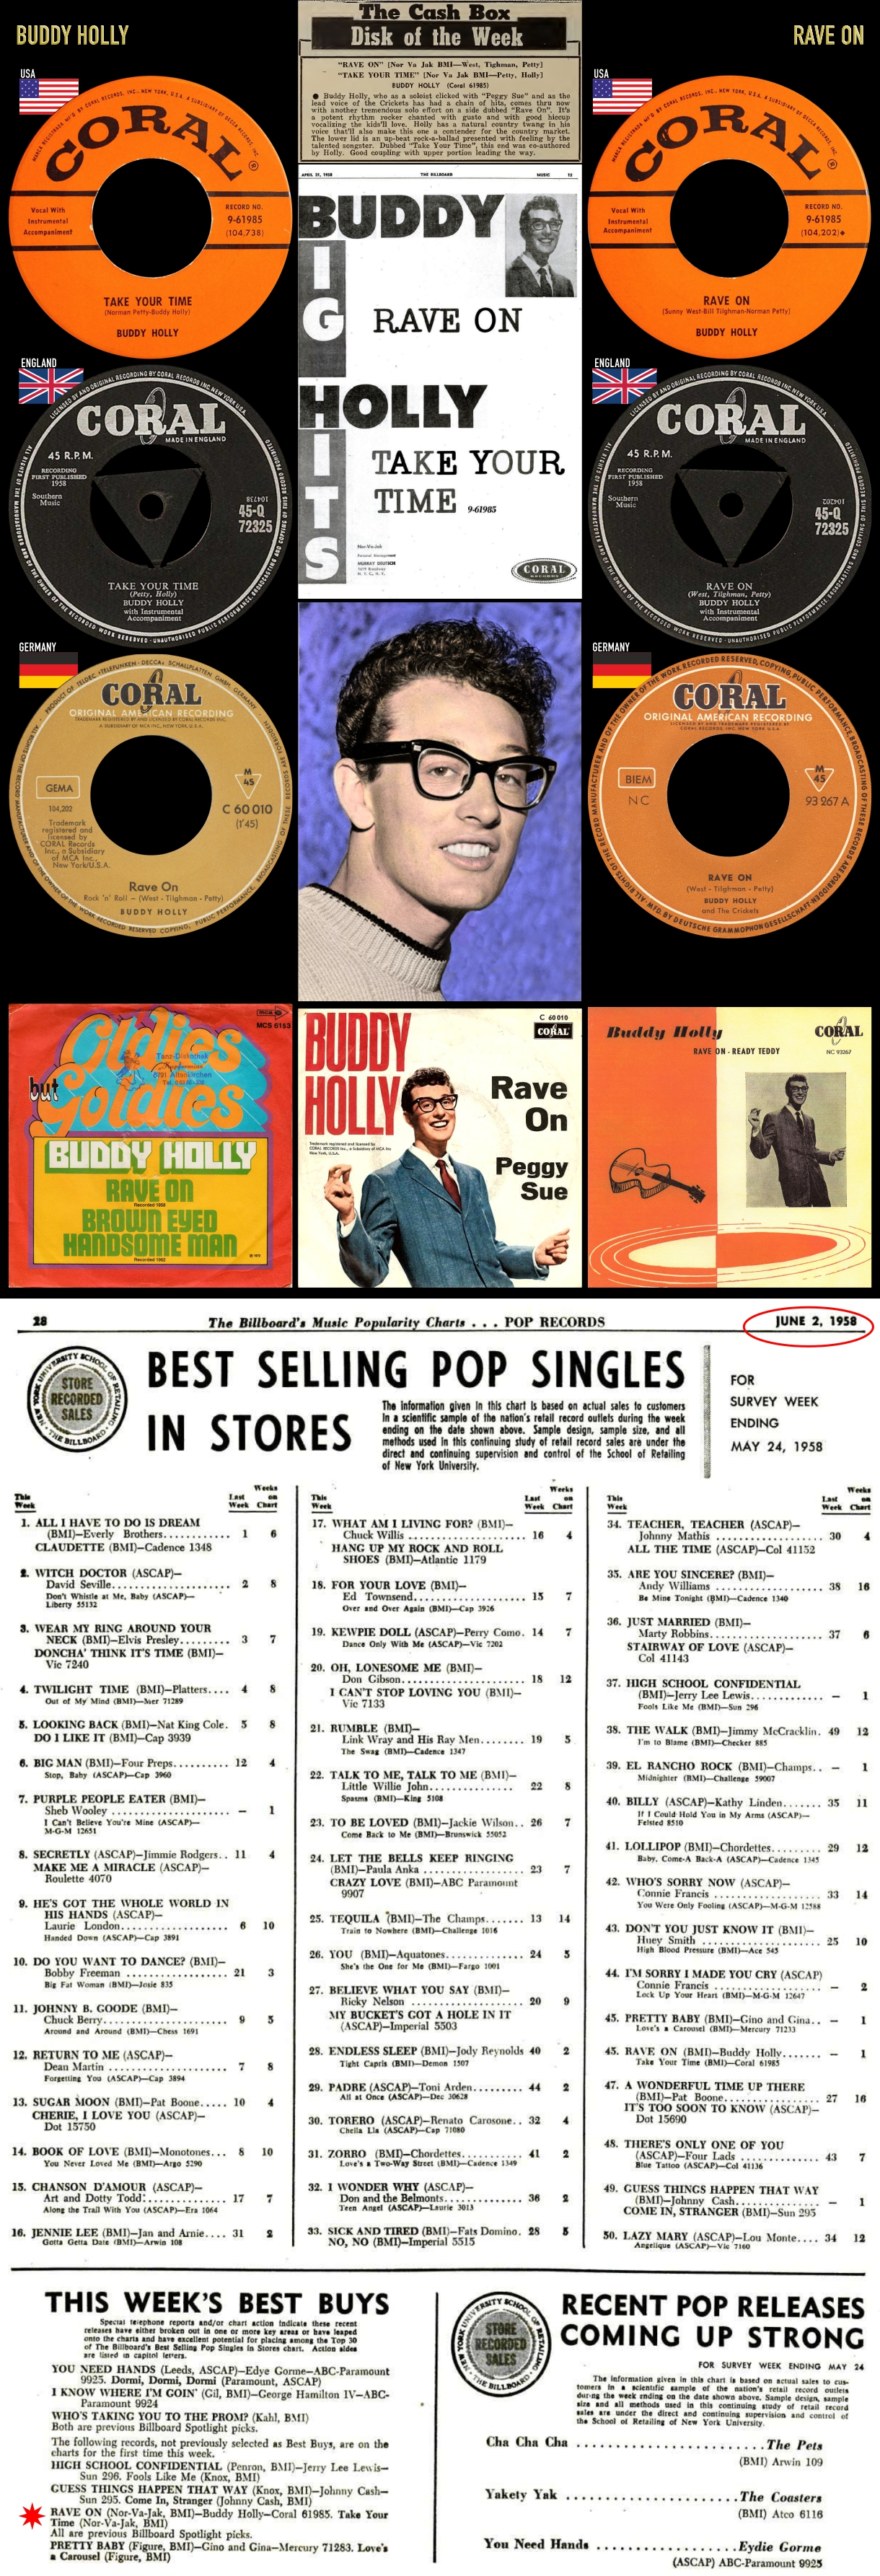 580524_Buddy Holly_Rave On_Take Your Time